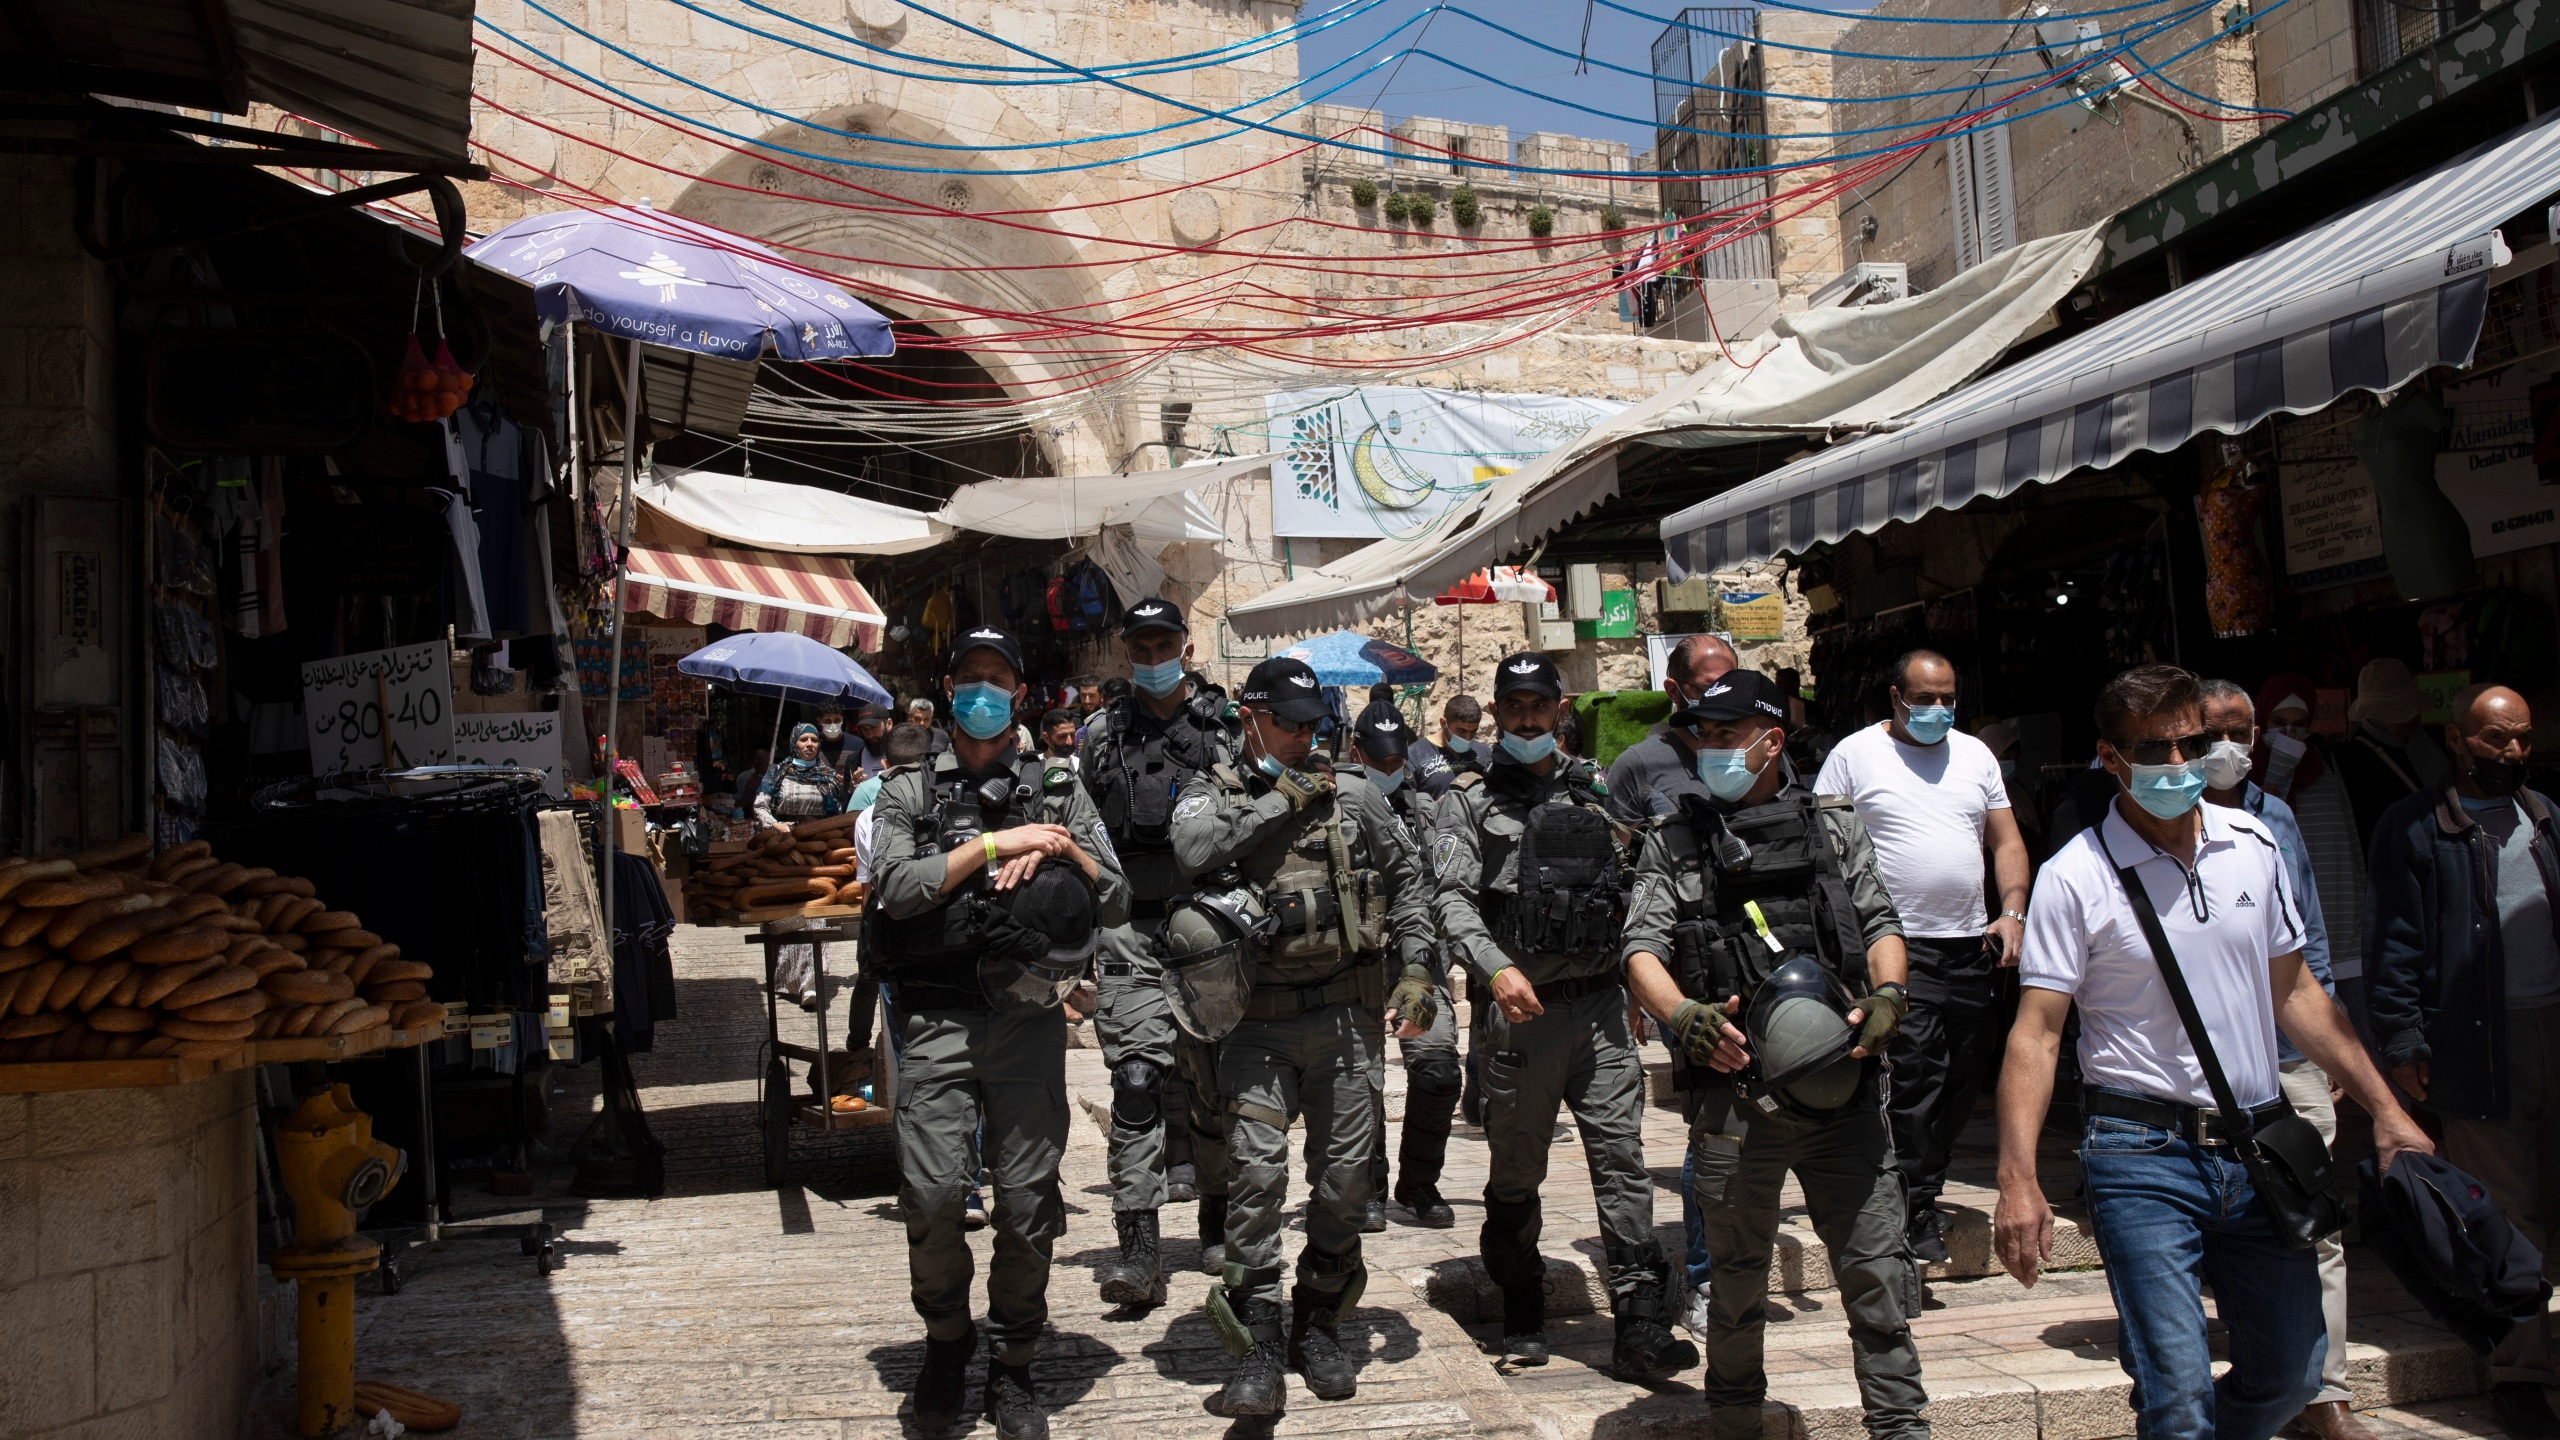 Israeli Border Police patrol the Old City of Jerusalem as worshippers arrive for Friday prayers during the Muslim holy month of Ramadan, on Friday, April 23, 2021. (AP Photo/Maya Alleruzzo)